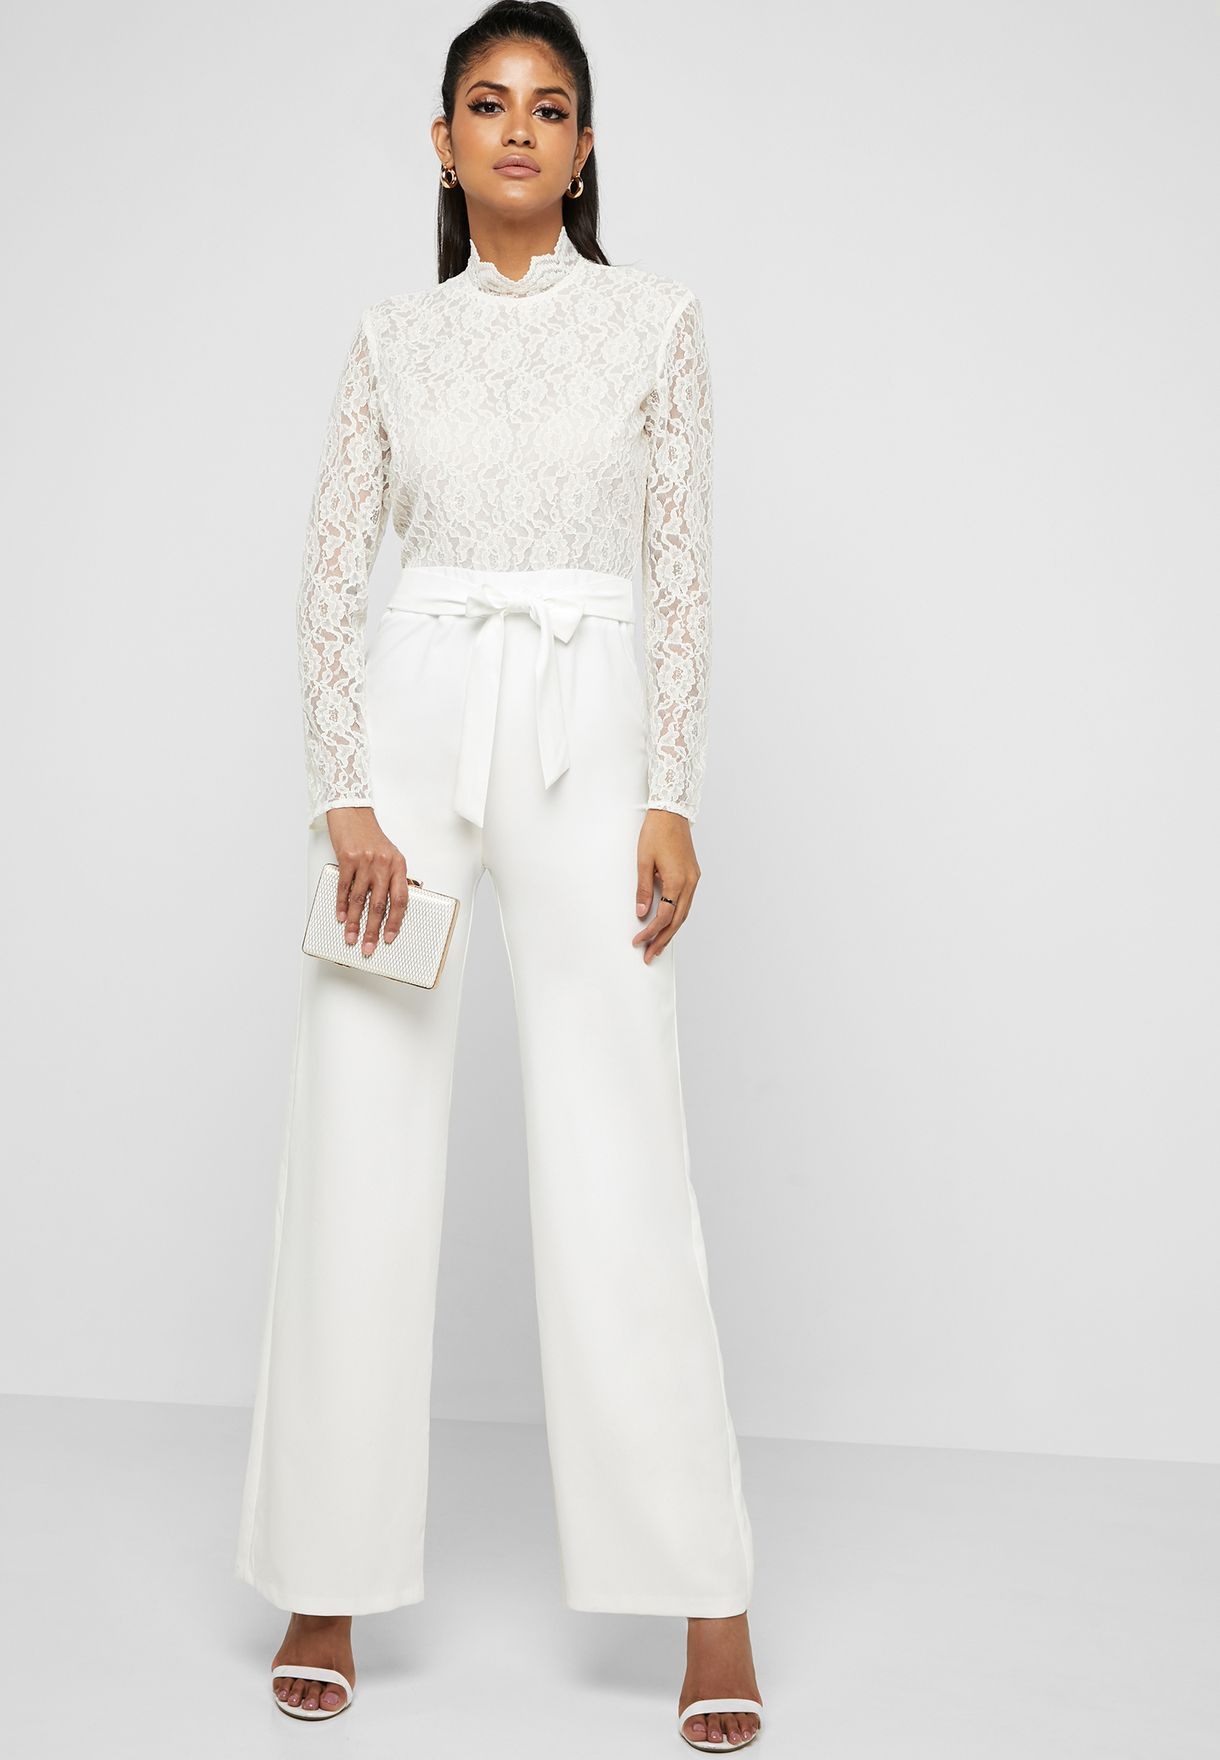 7d48a795f27 Shop Missguided white Lace Insert Belted Jumpsuit WXM9905473 for ...